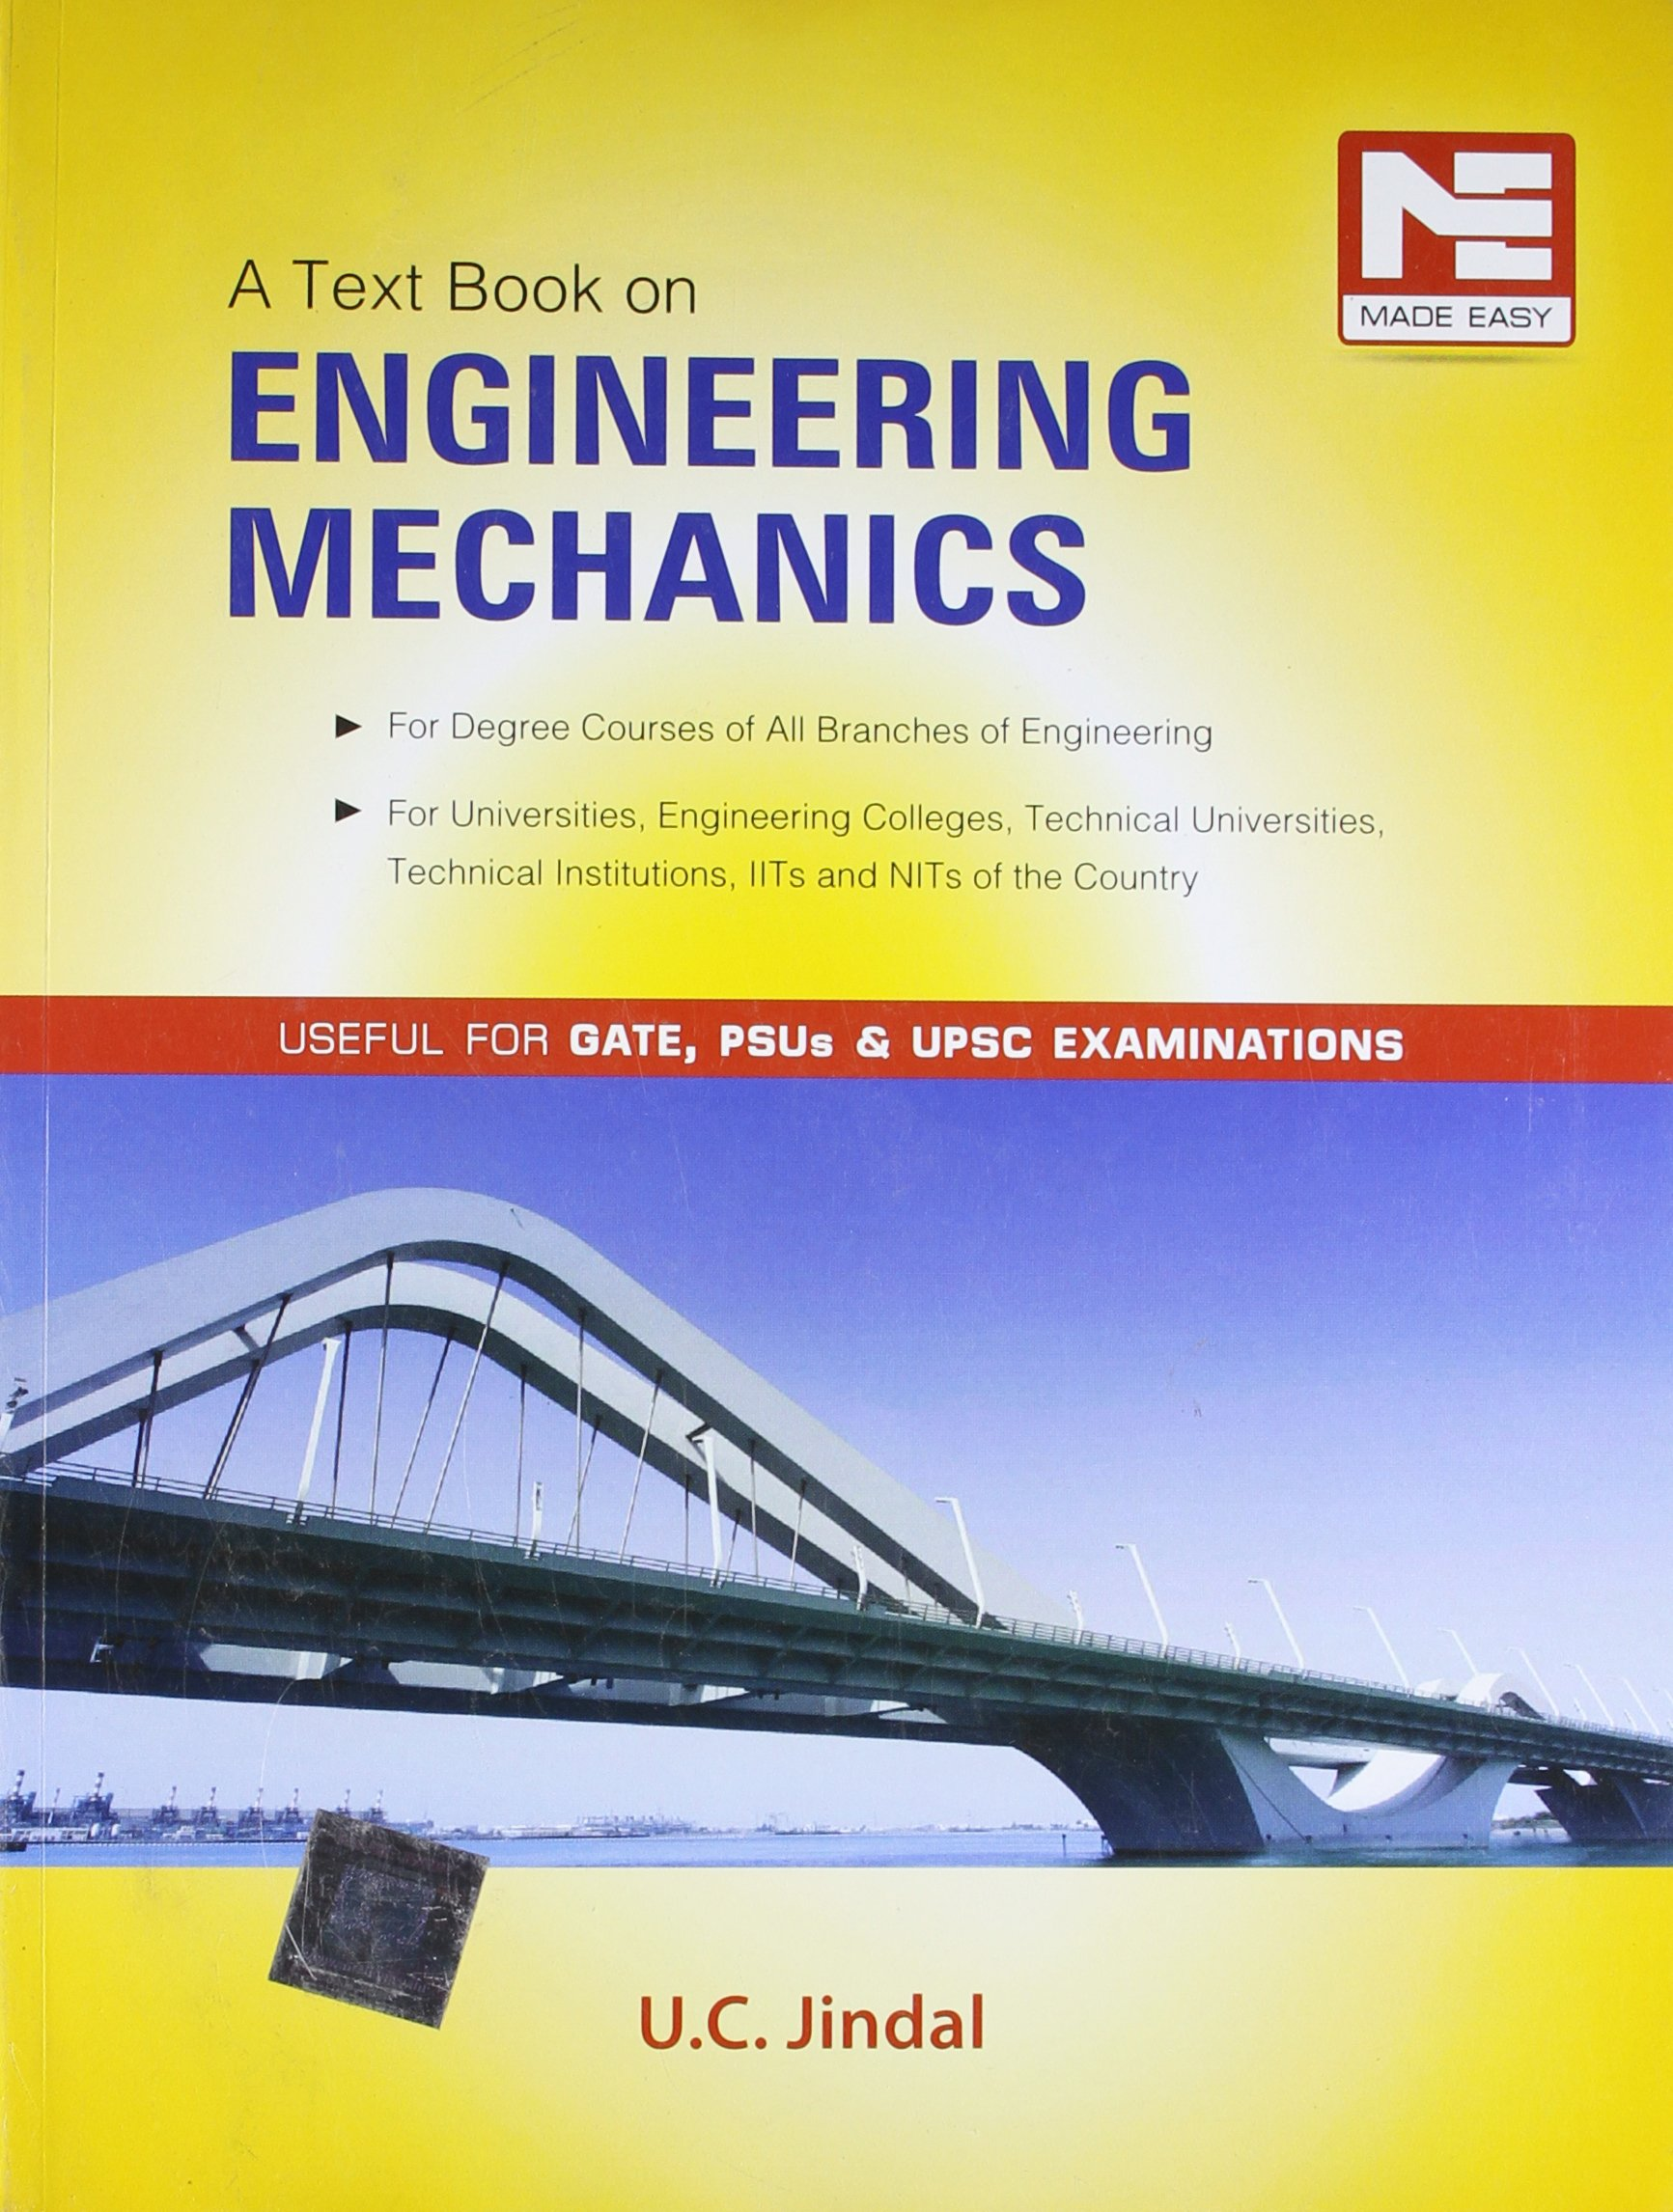 Buy A Text Book on Engineering Mechanics Book Online at Low